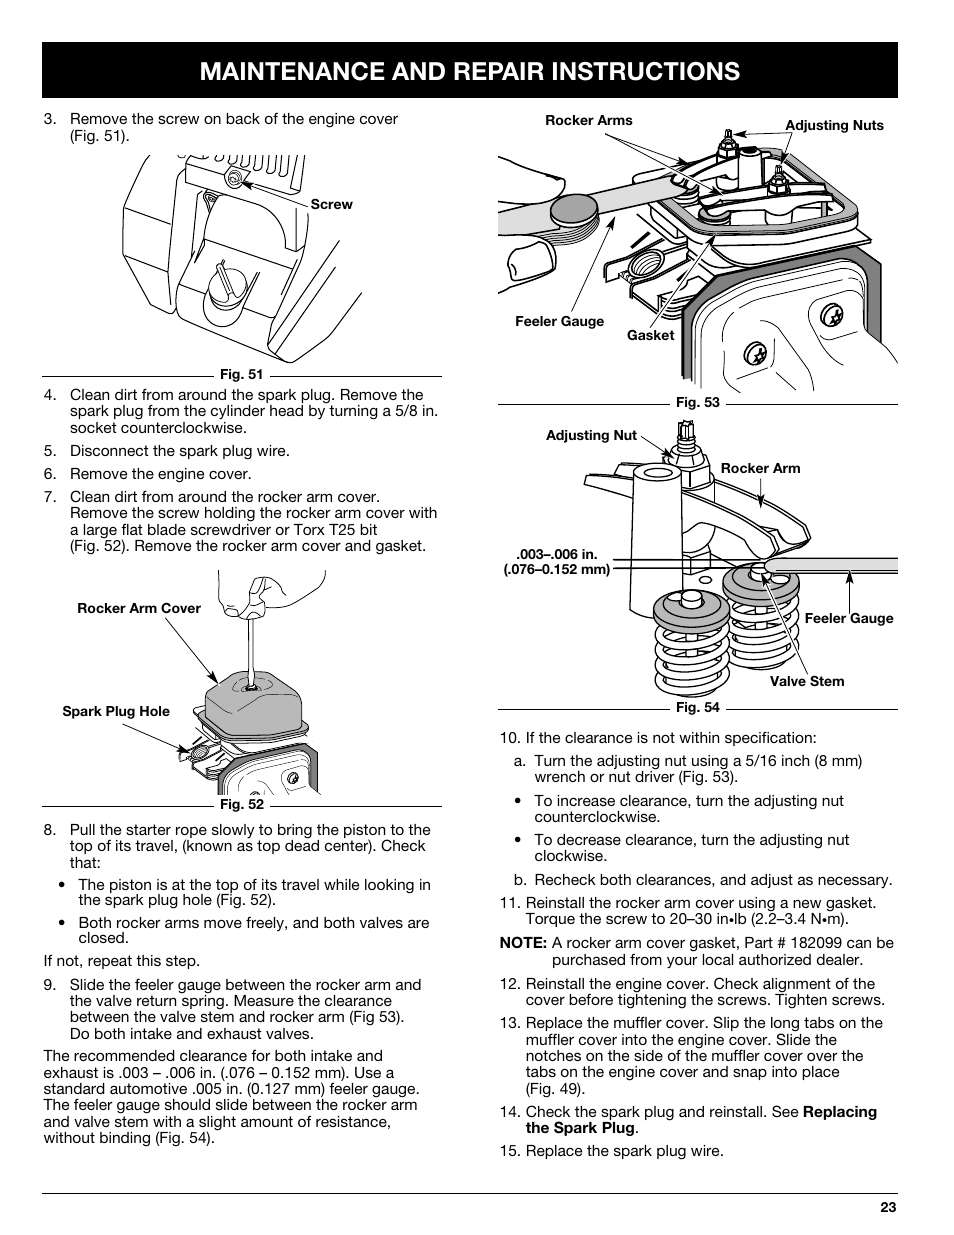 Maintenance And Repair Instructions